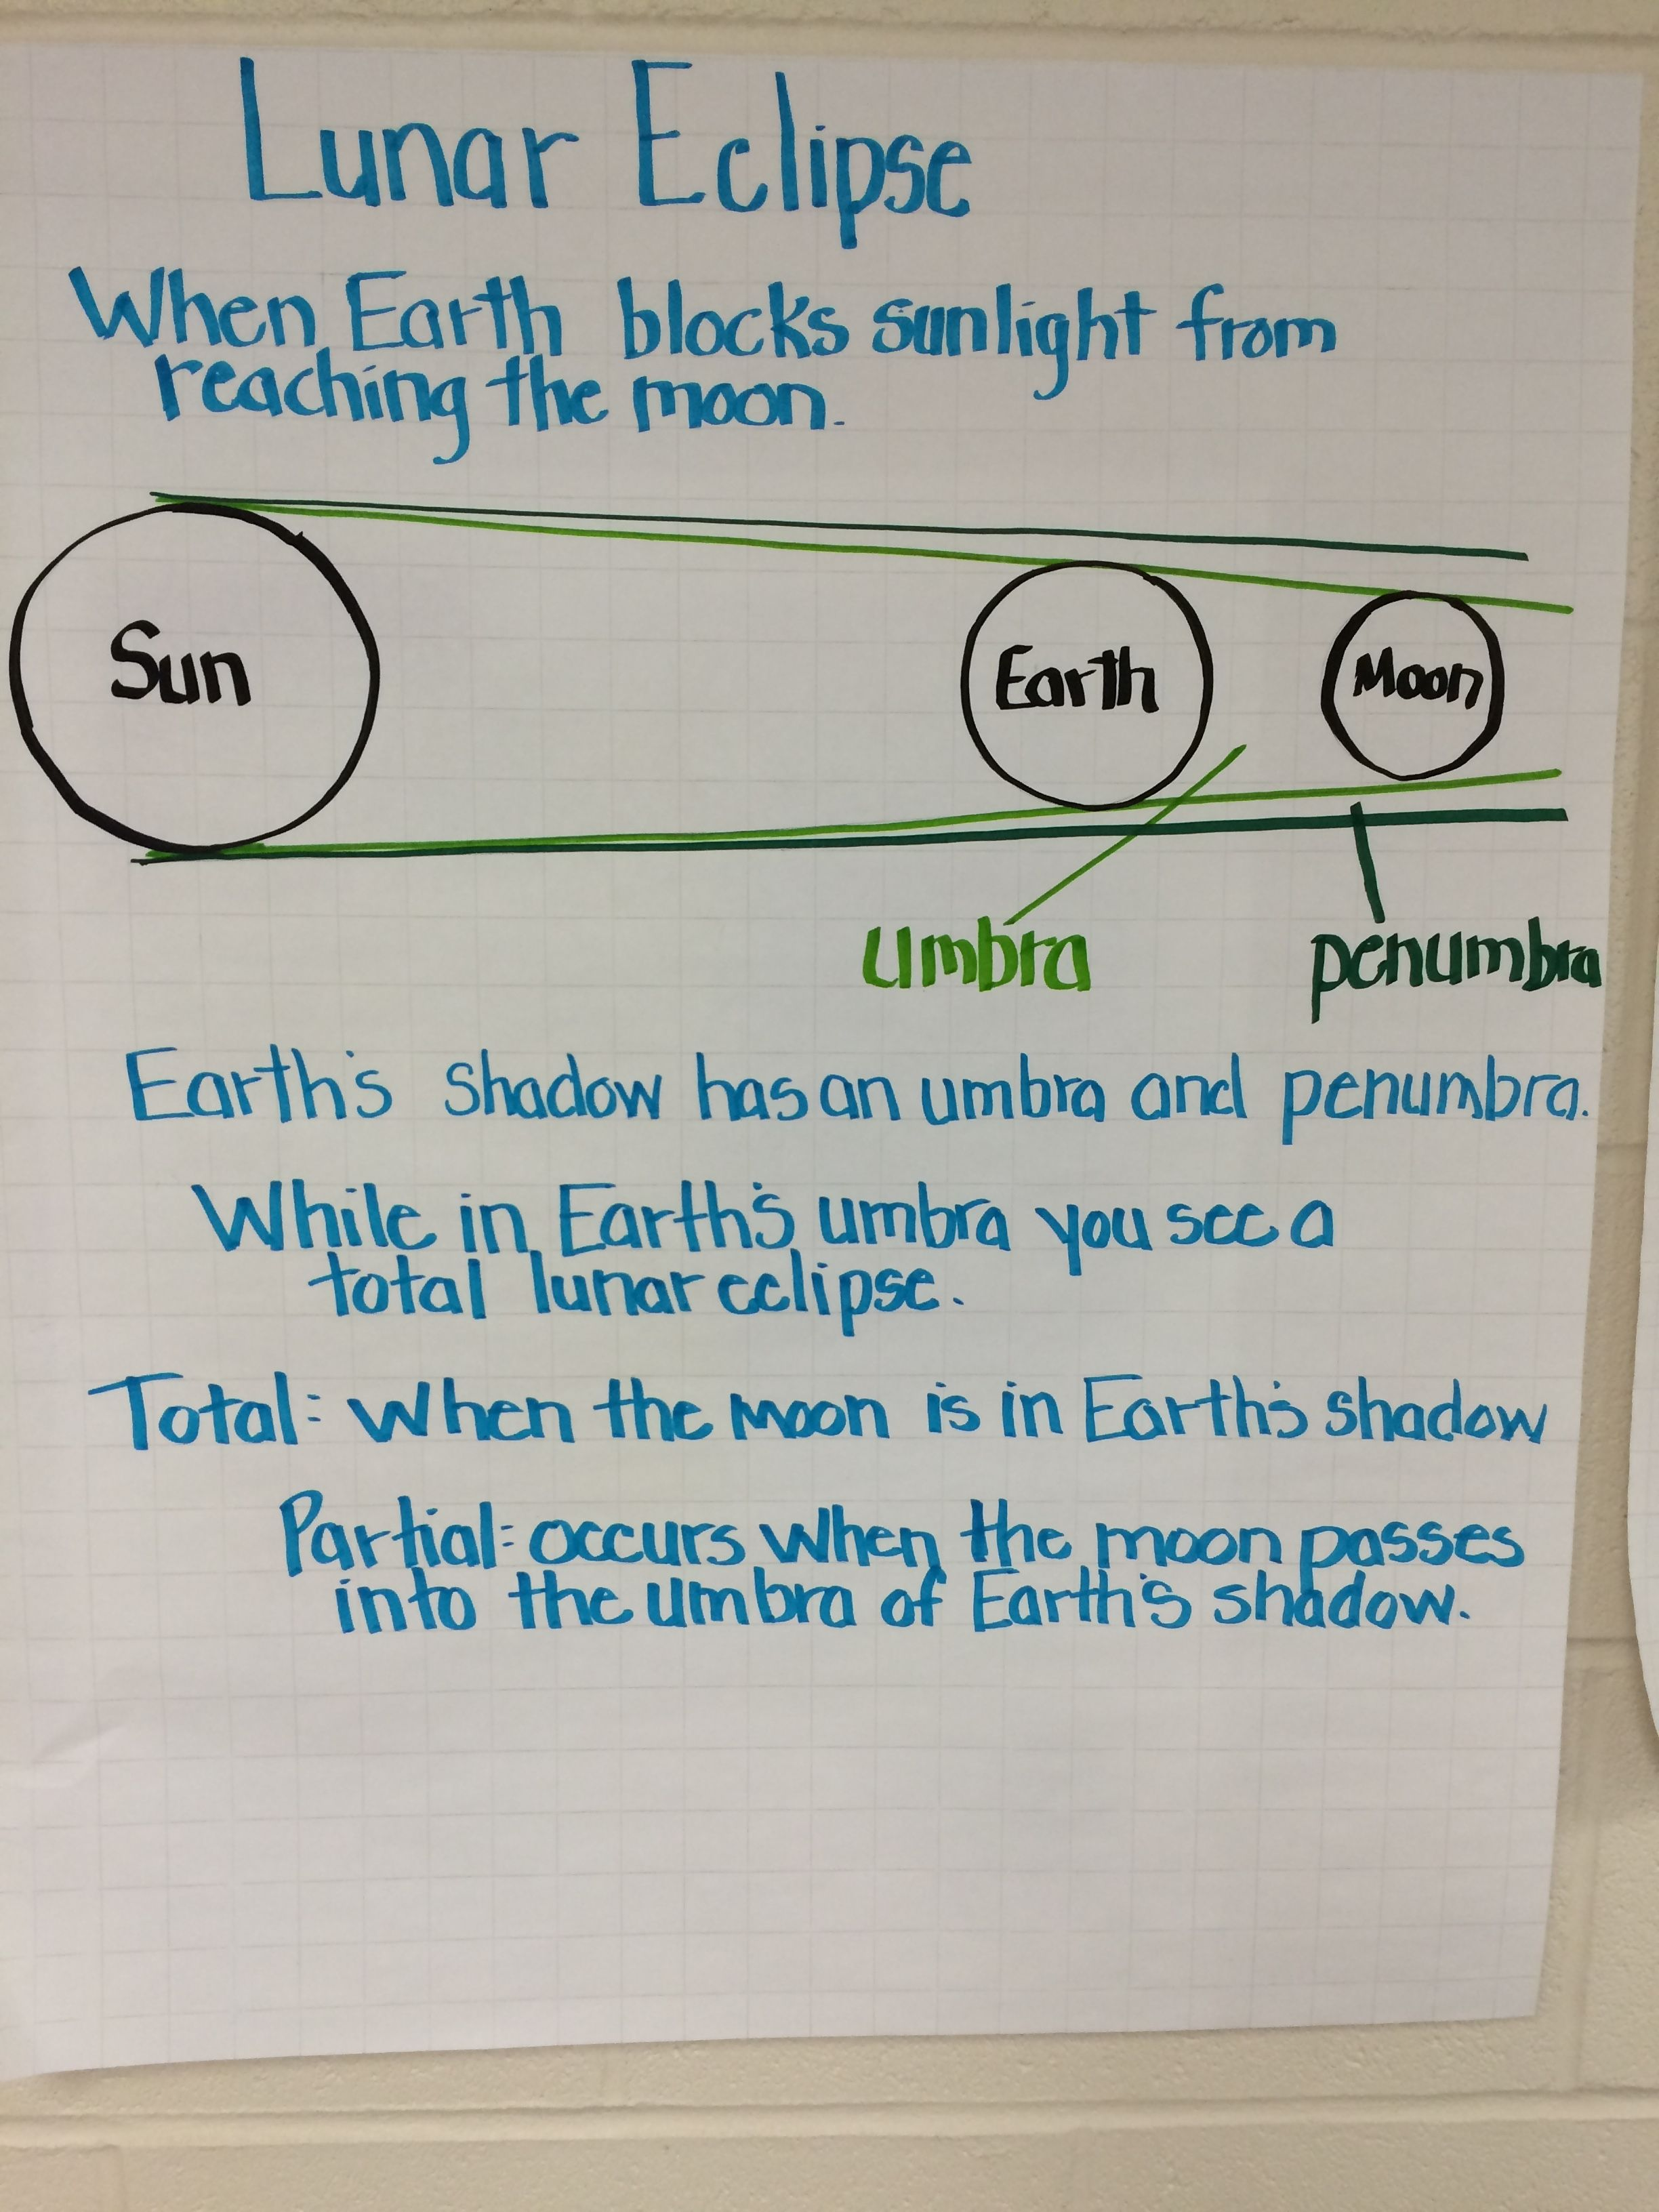 Lunar Eclipse Anchor Chart   Science anchor charts [ 3264 x 2448 Pixel ]